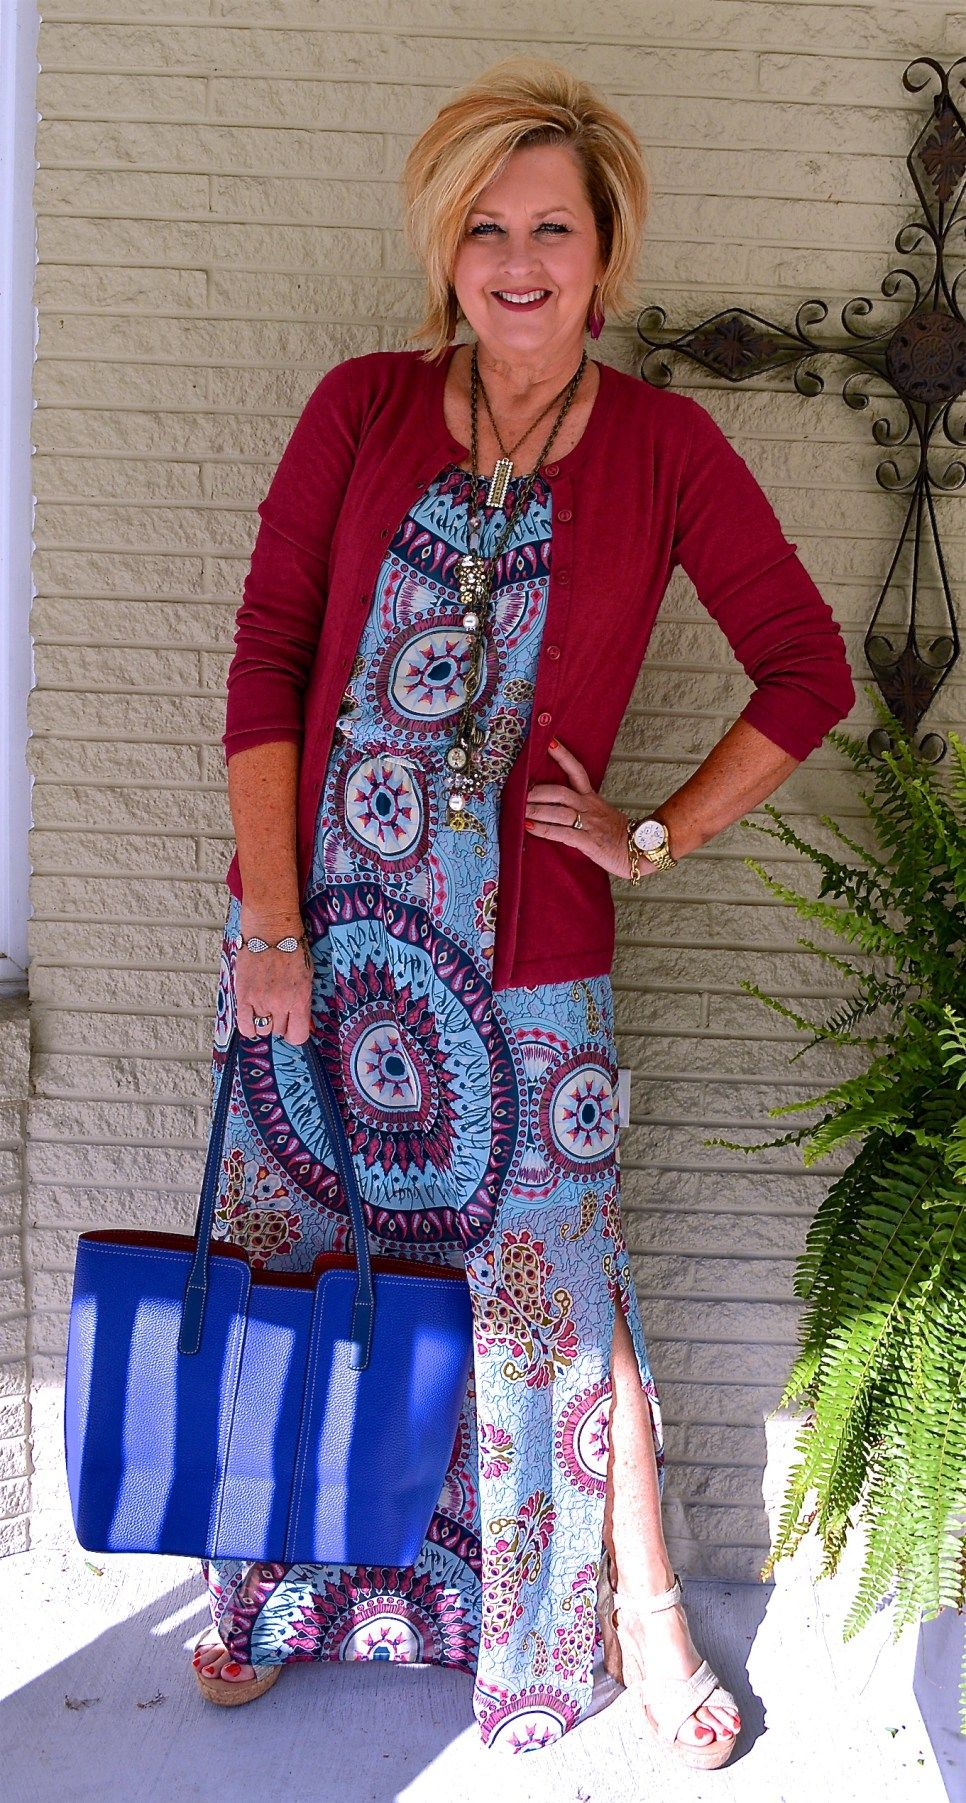 Summer Outfits For 40 Year Old Woman: Fashion, Over 50 Womens